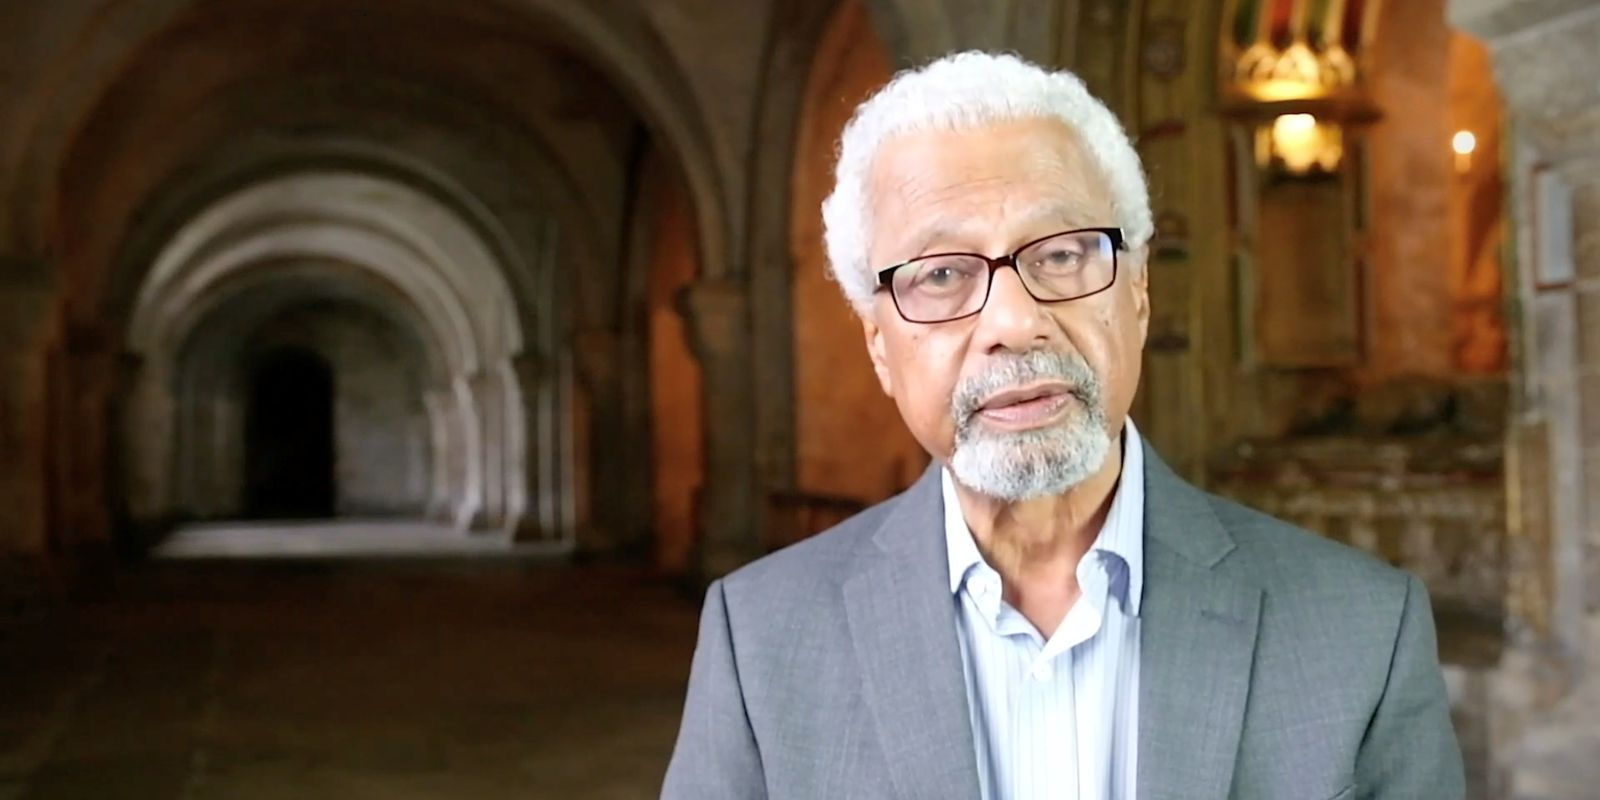 Abdulrazak Gurnah reads for a Canterbury Cathedral project in Canterbury